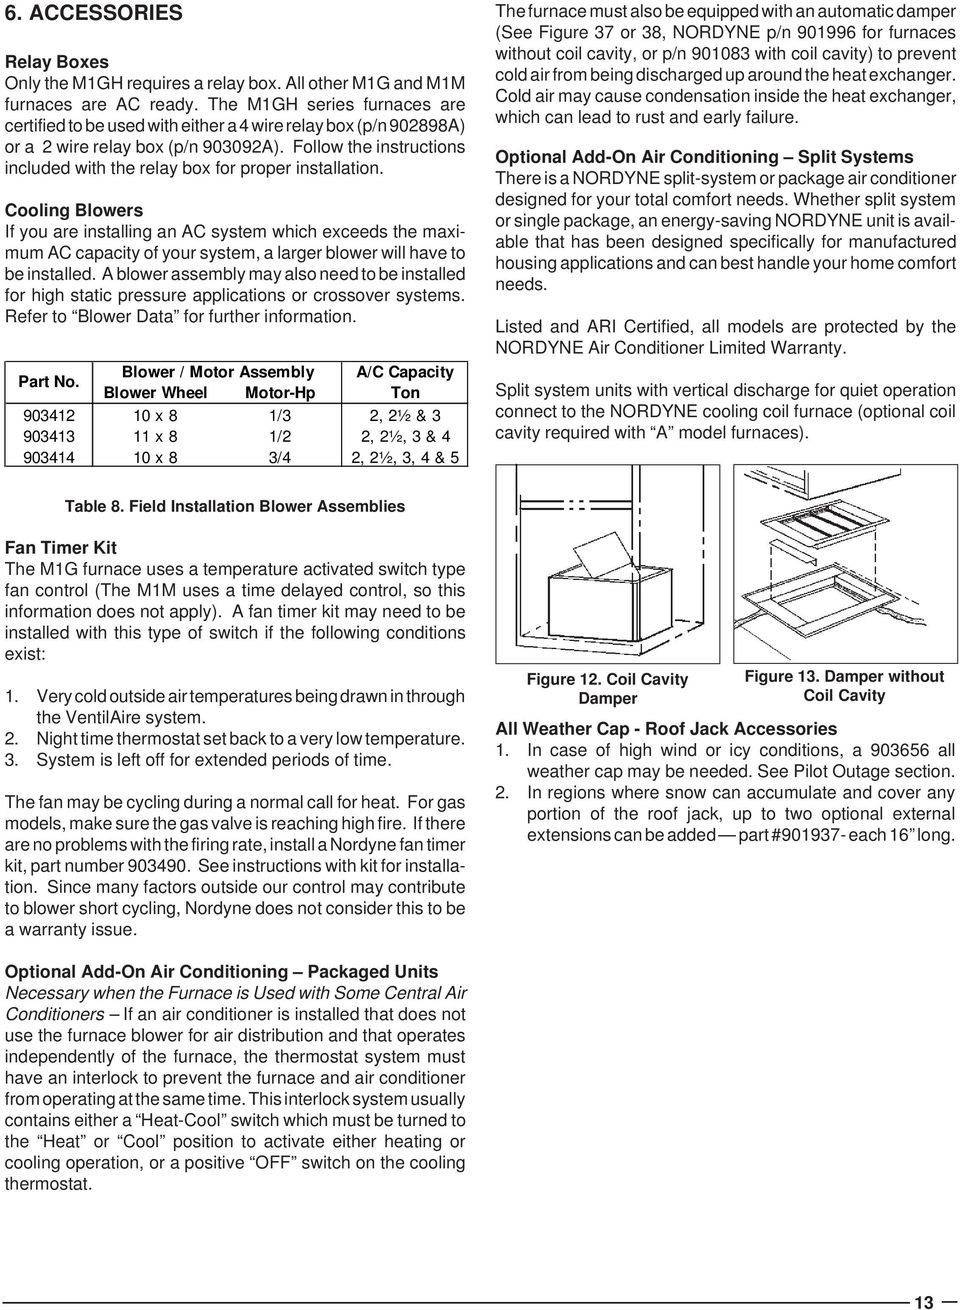 M1 Series M1g And M1m Furnaces Service Manual Pdf Blower Motor Wiring Reversedhvacbm1jpg Follow The Instructions Included With Relay Box For Proper Installation